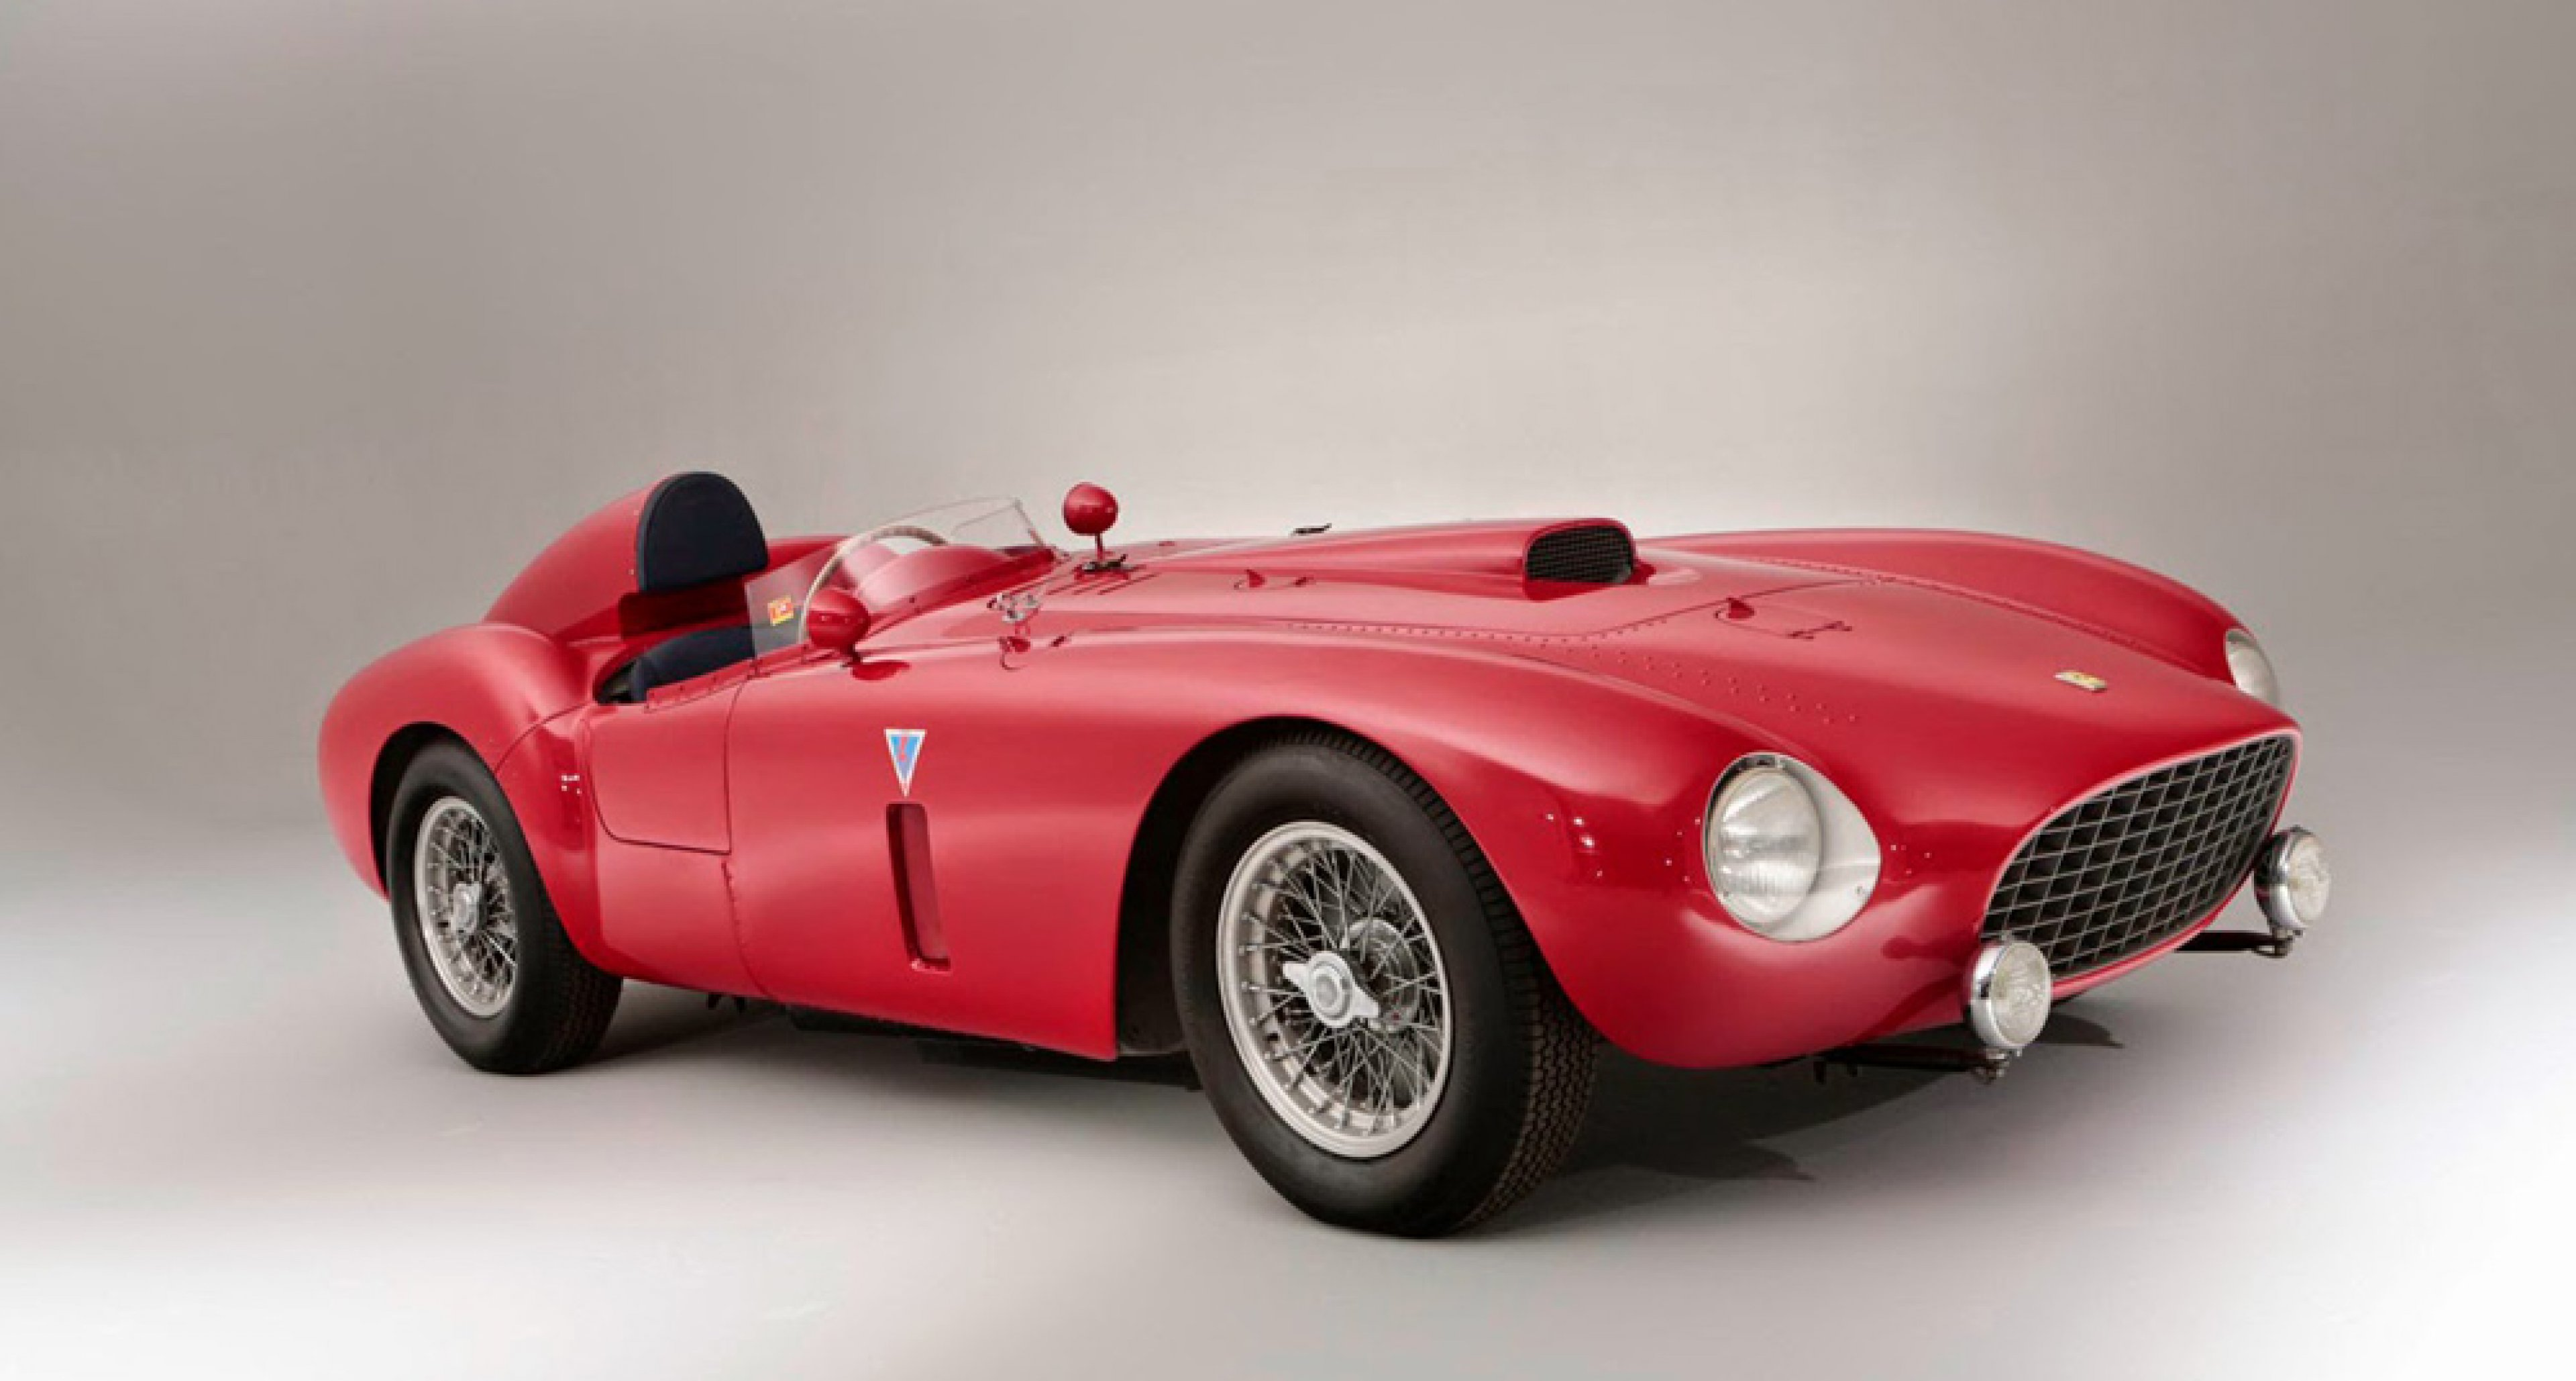 1954 Ferrari 375-Plus Spider Competizione, sold by Bonhams in June 2014 for $ 18,400,177.